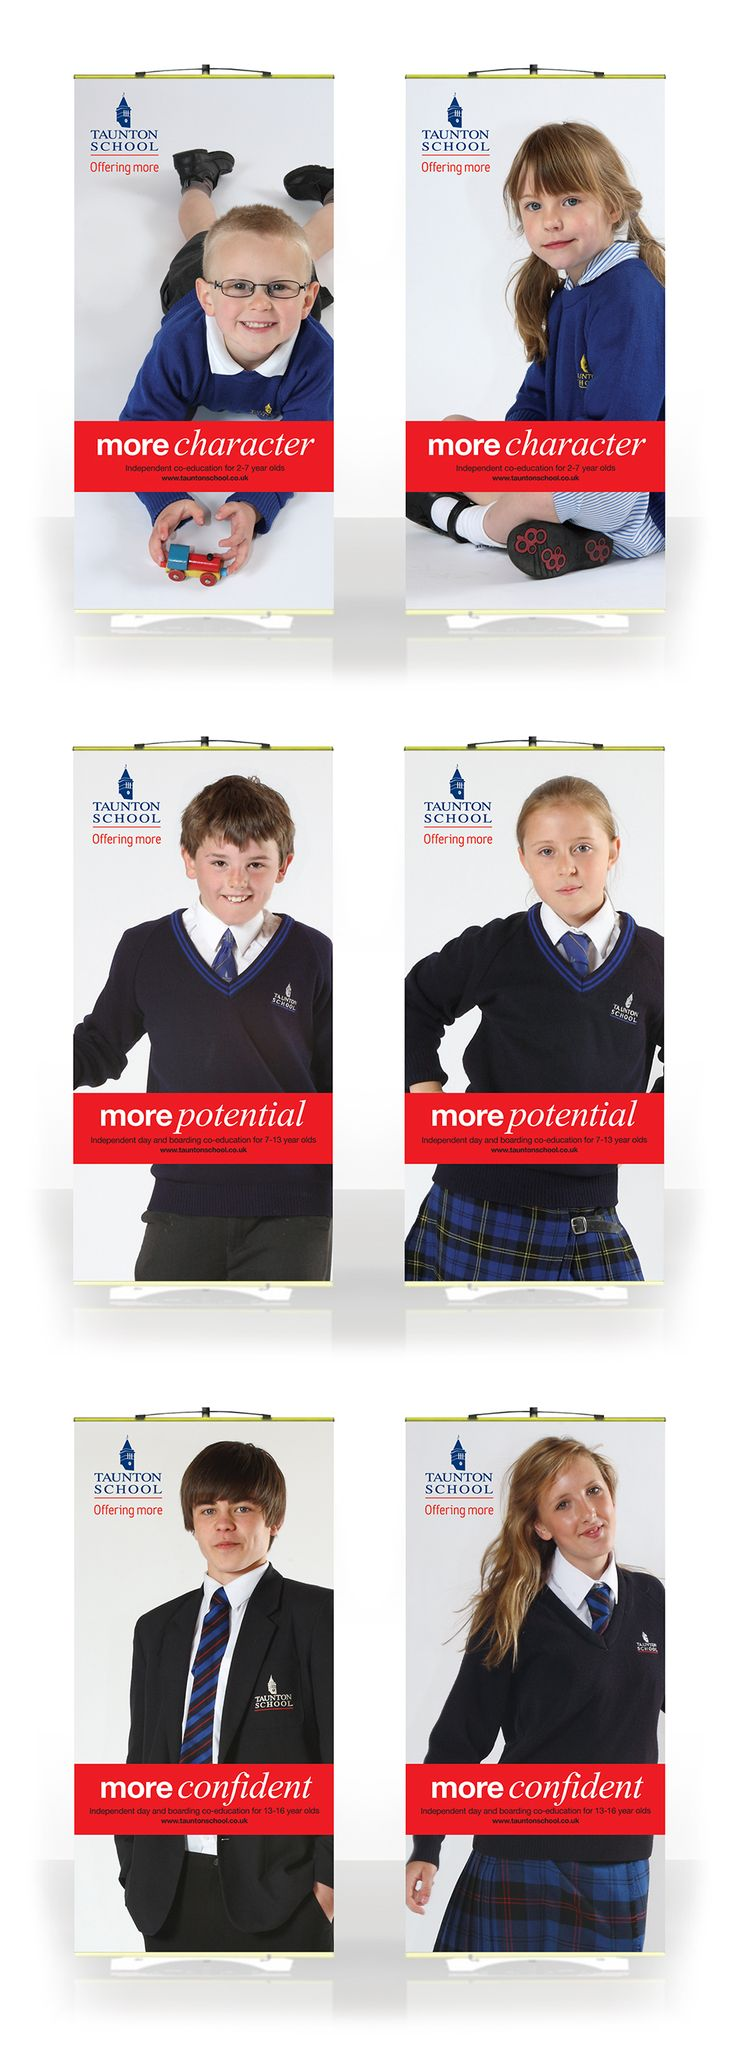 Promotional pop-up banners for Taunton School.